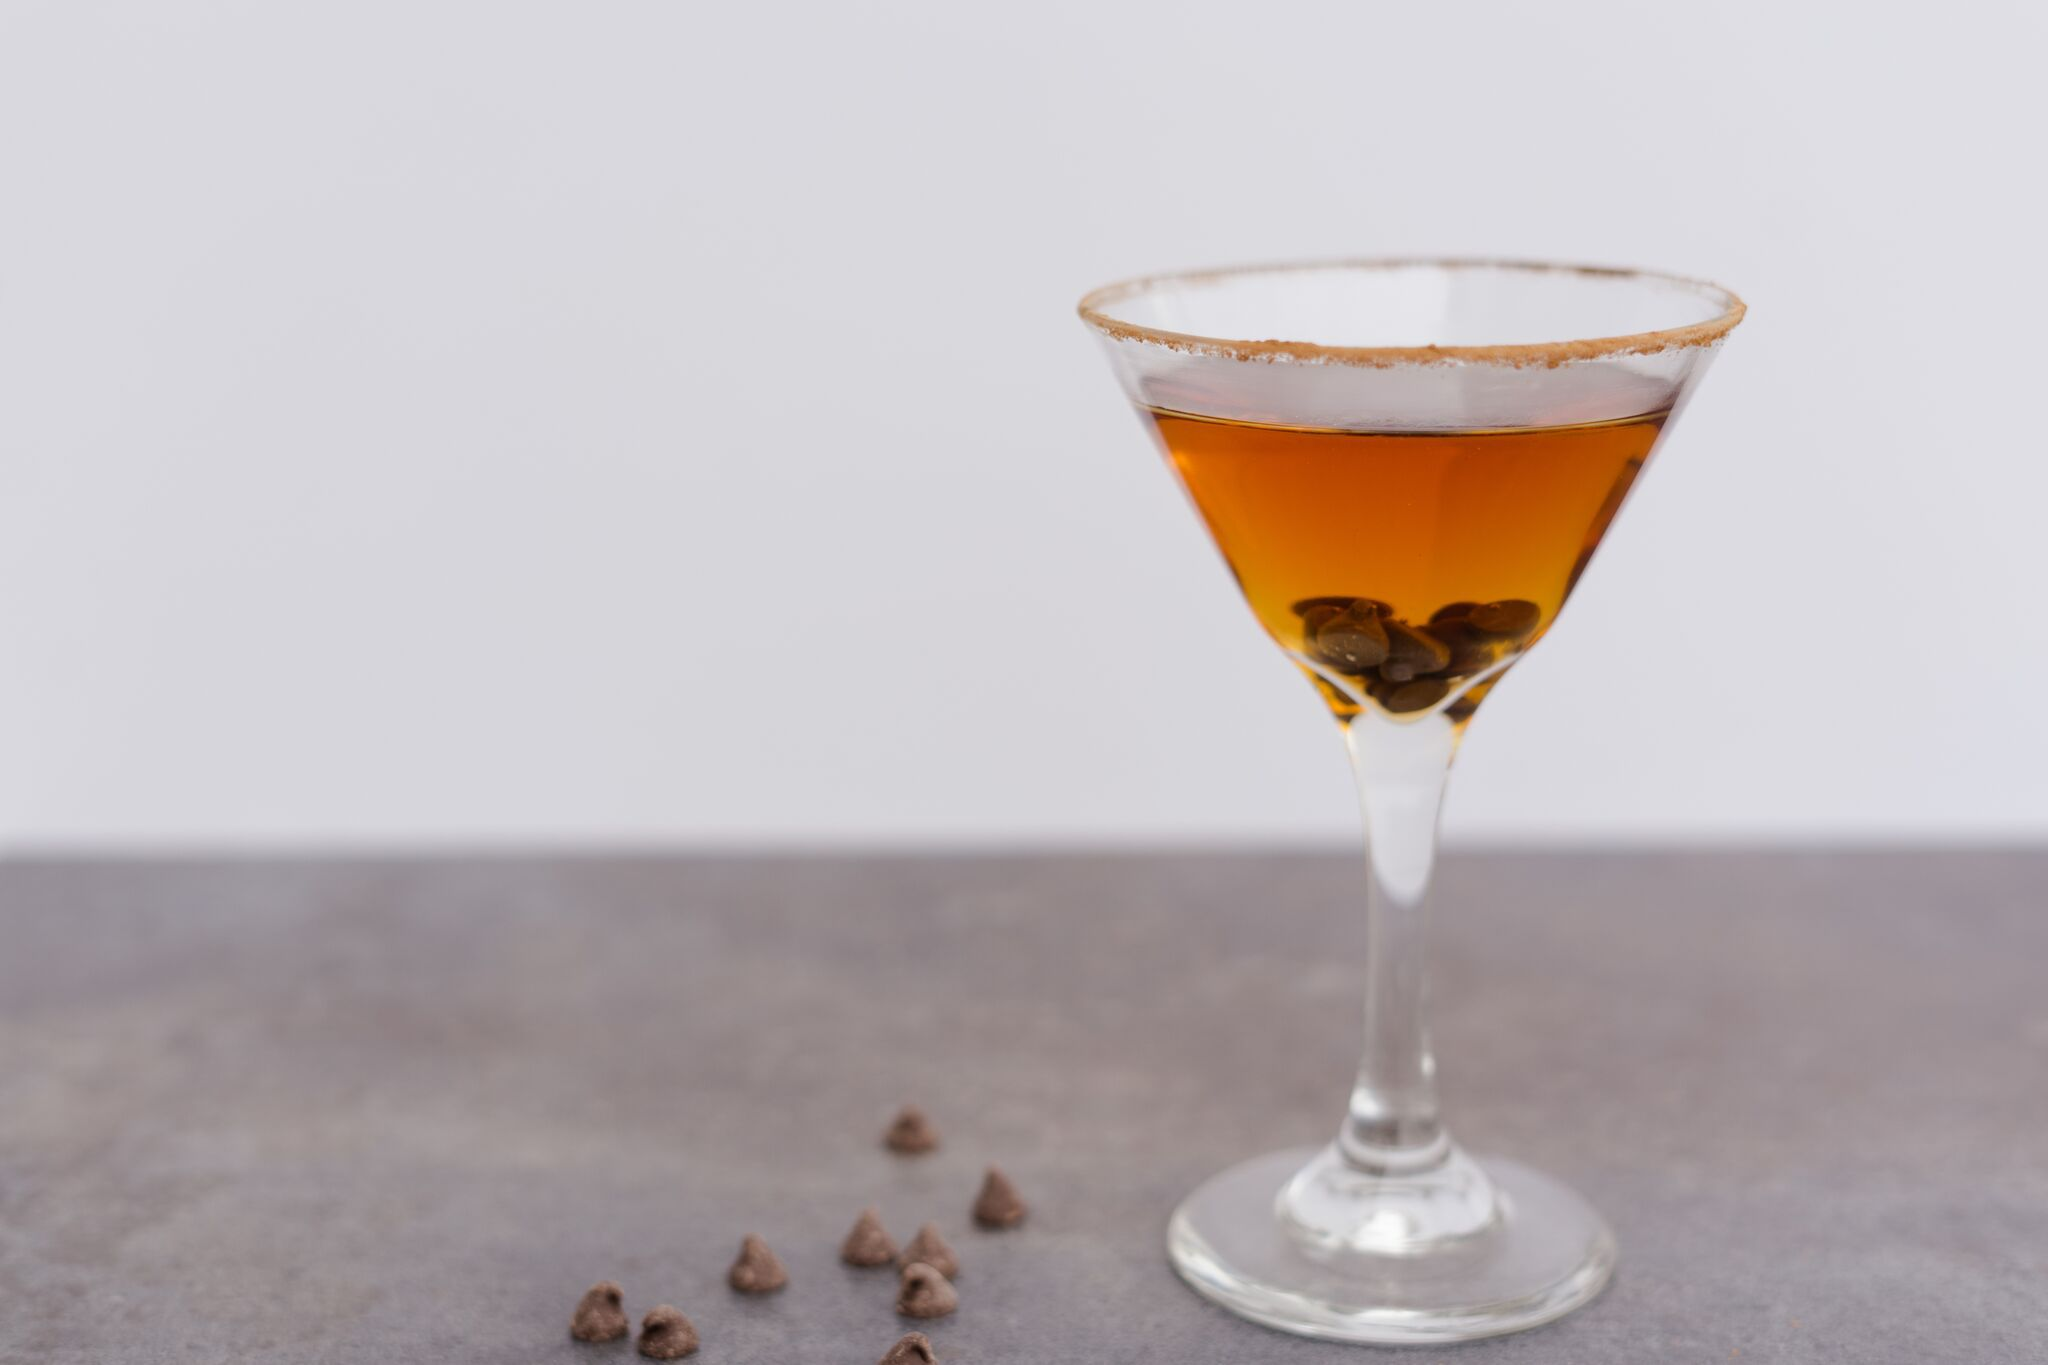 """If you had or made a Chocolate Martini before, chances are your recipe was slightly or completely different than this one. Many use chocolate liqueur for the """"chocolate"""" part of the cocktail, especially at bars."""